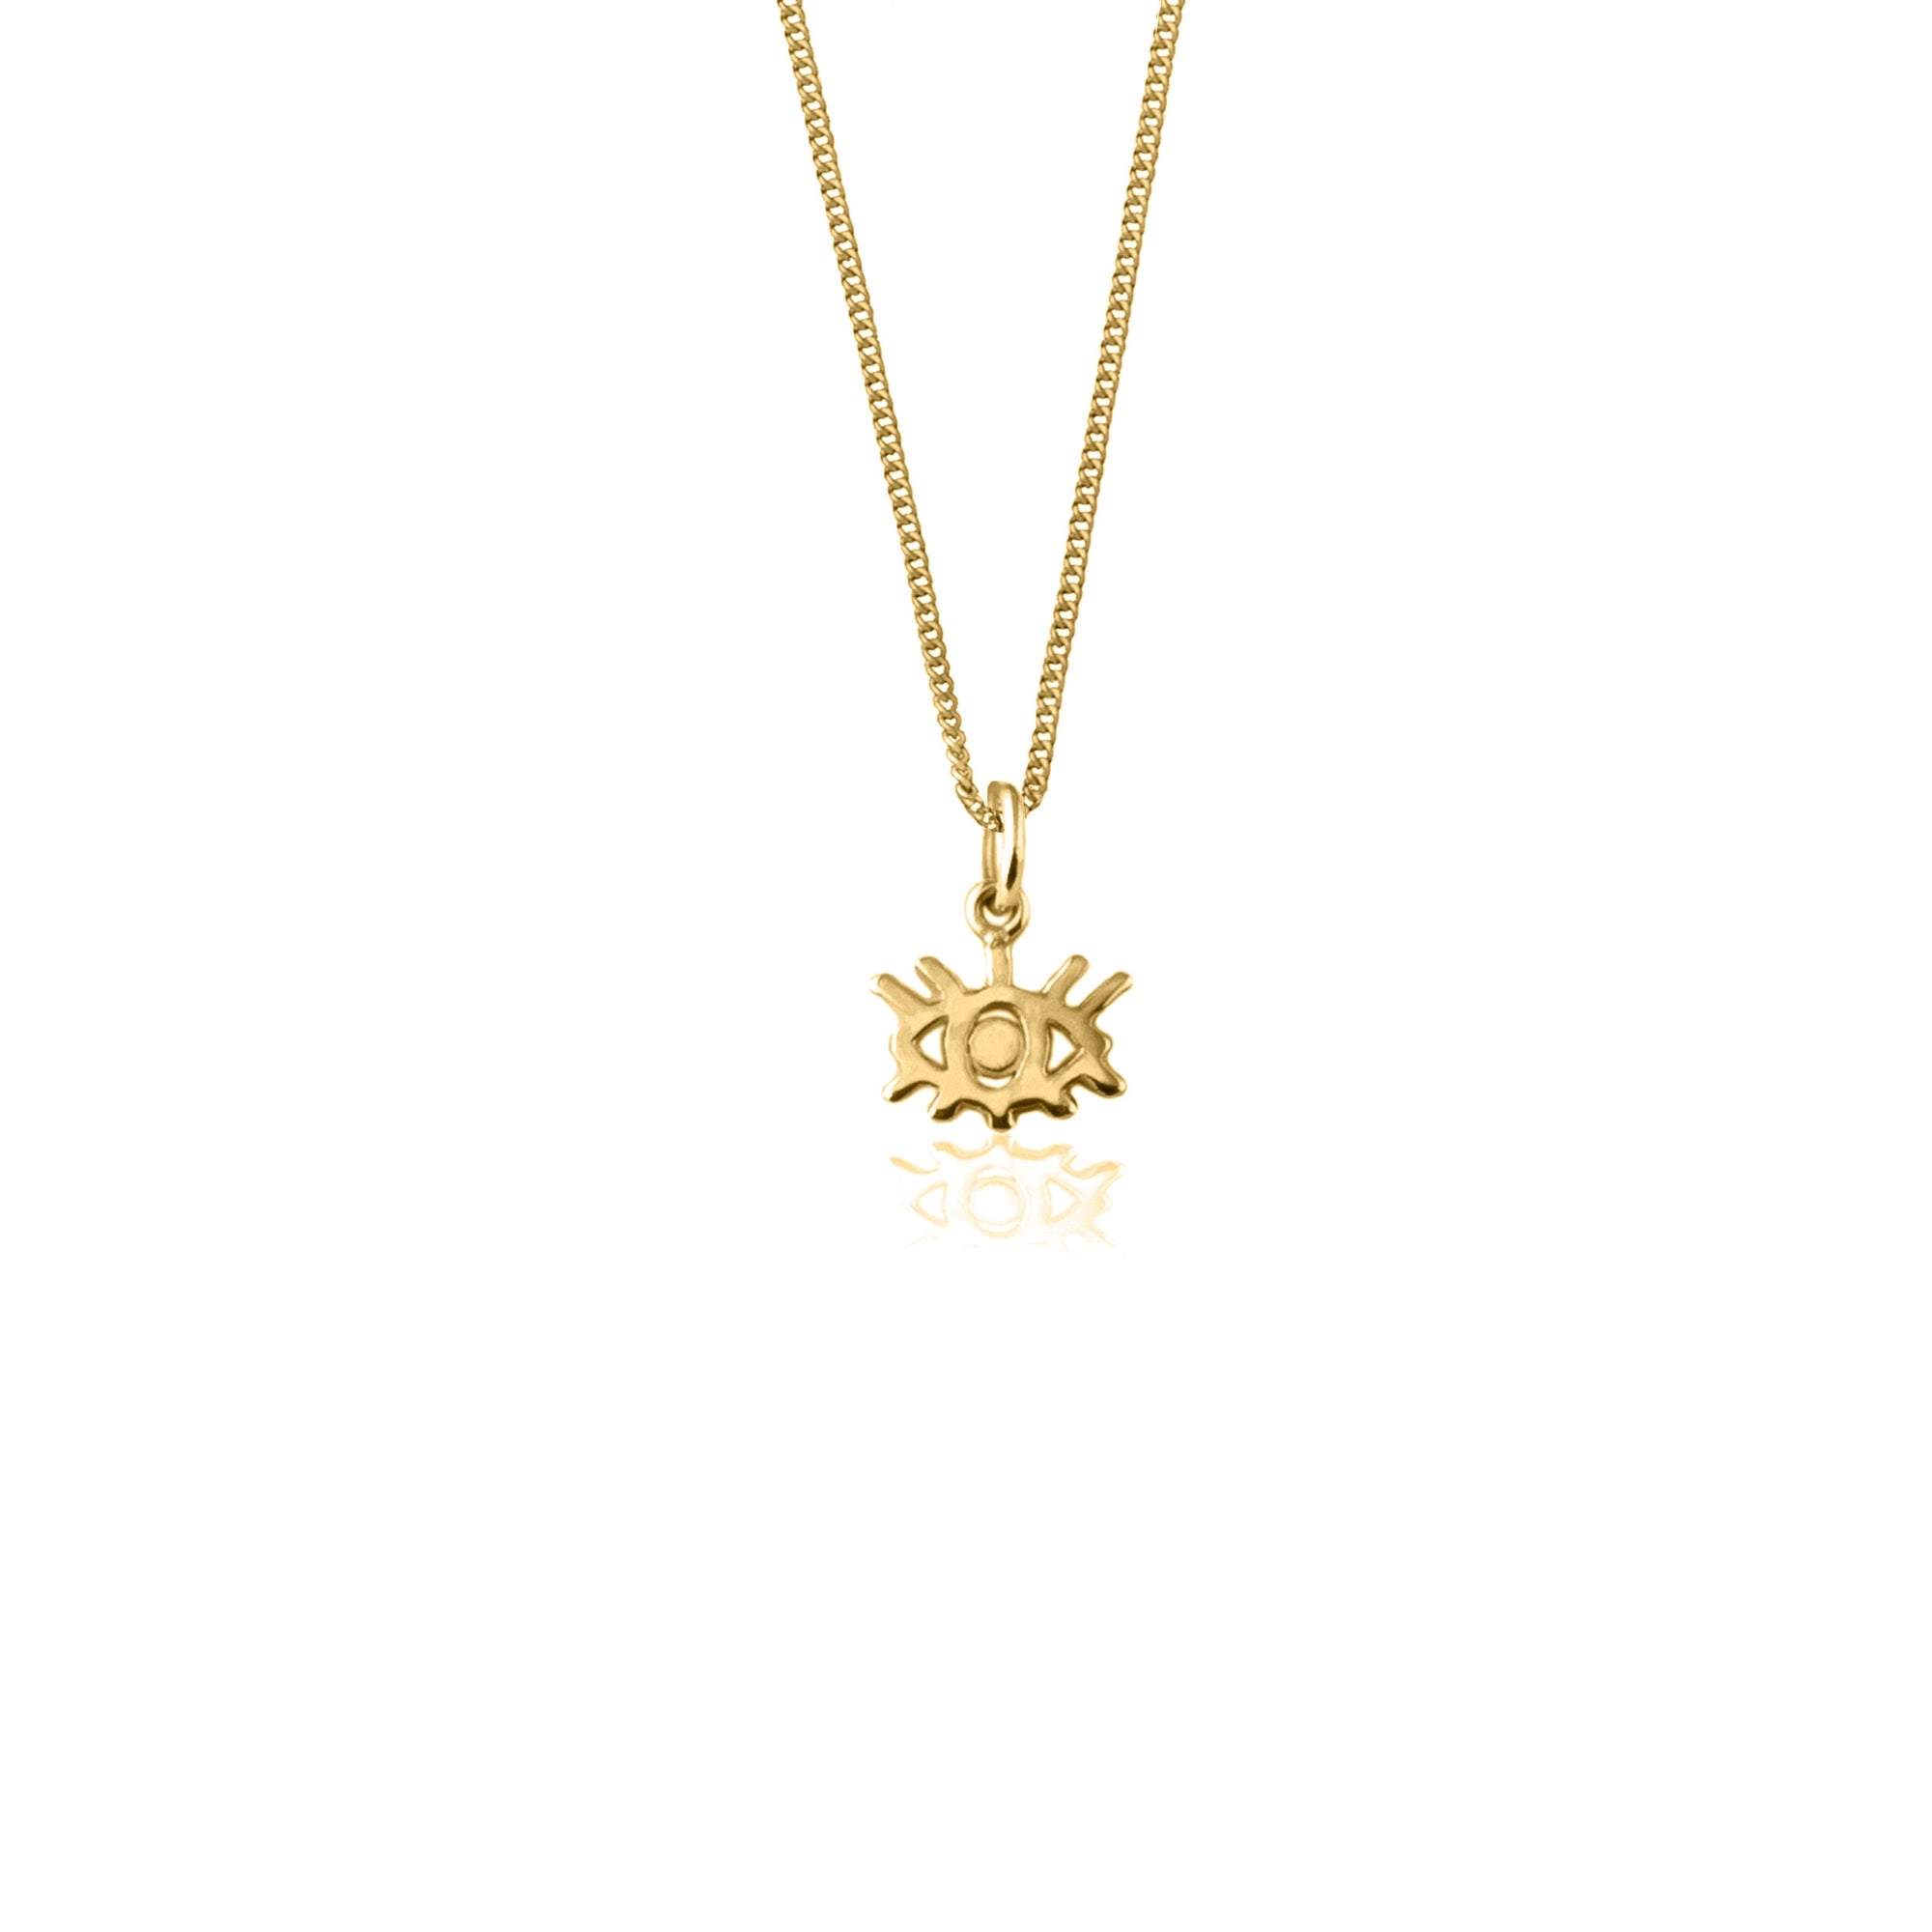 at online johnlewis buyewa star john rsp lewis main plain pendant pdp necklace gold diamond com set white ewa